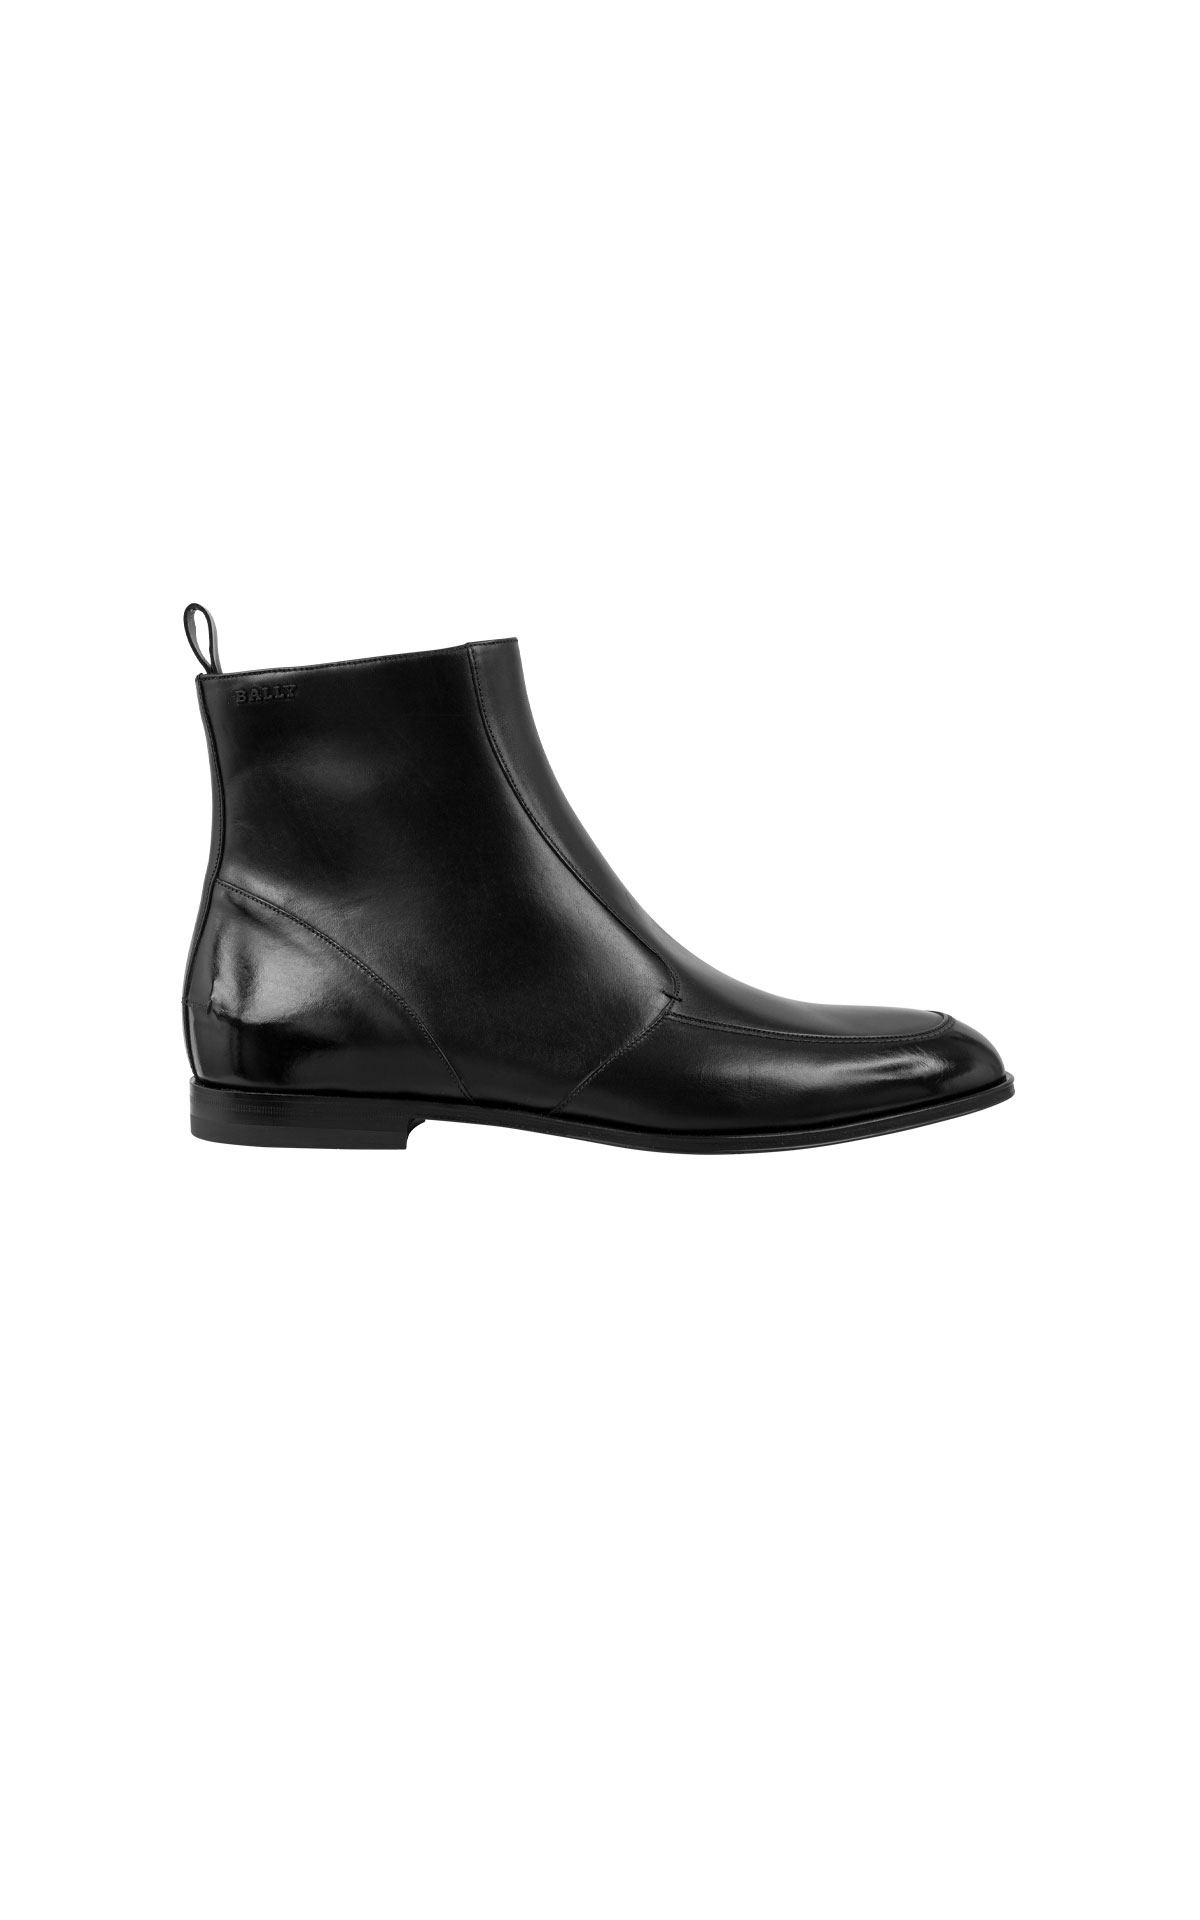 Bally Men's boots black